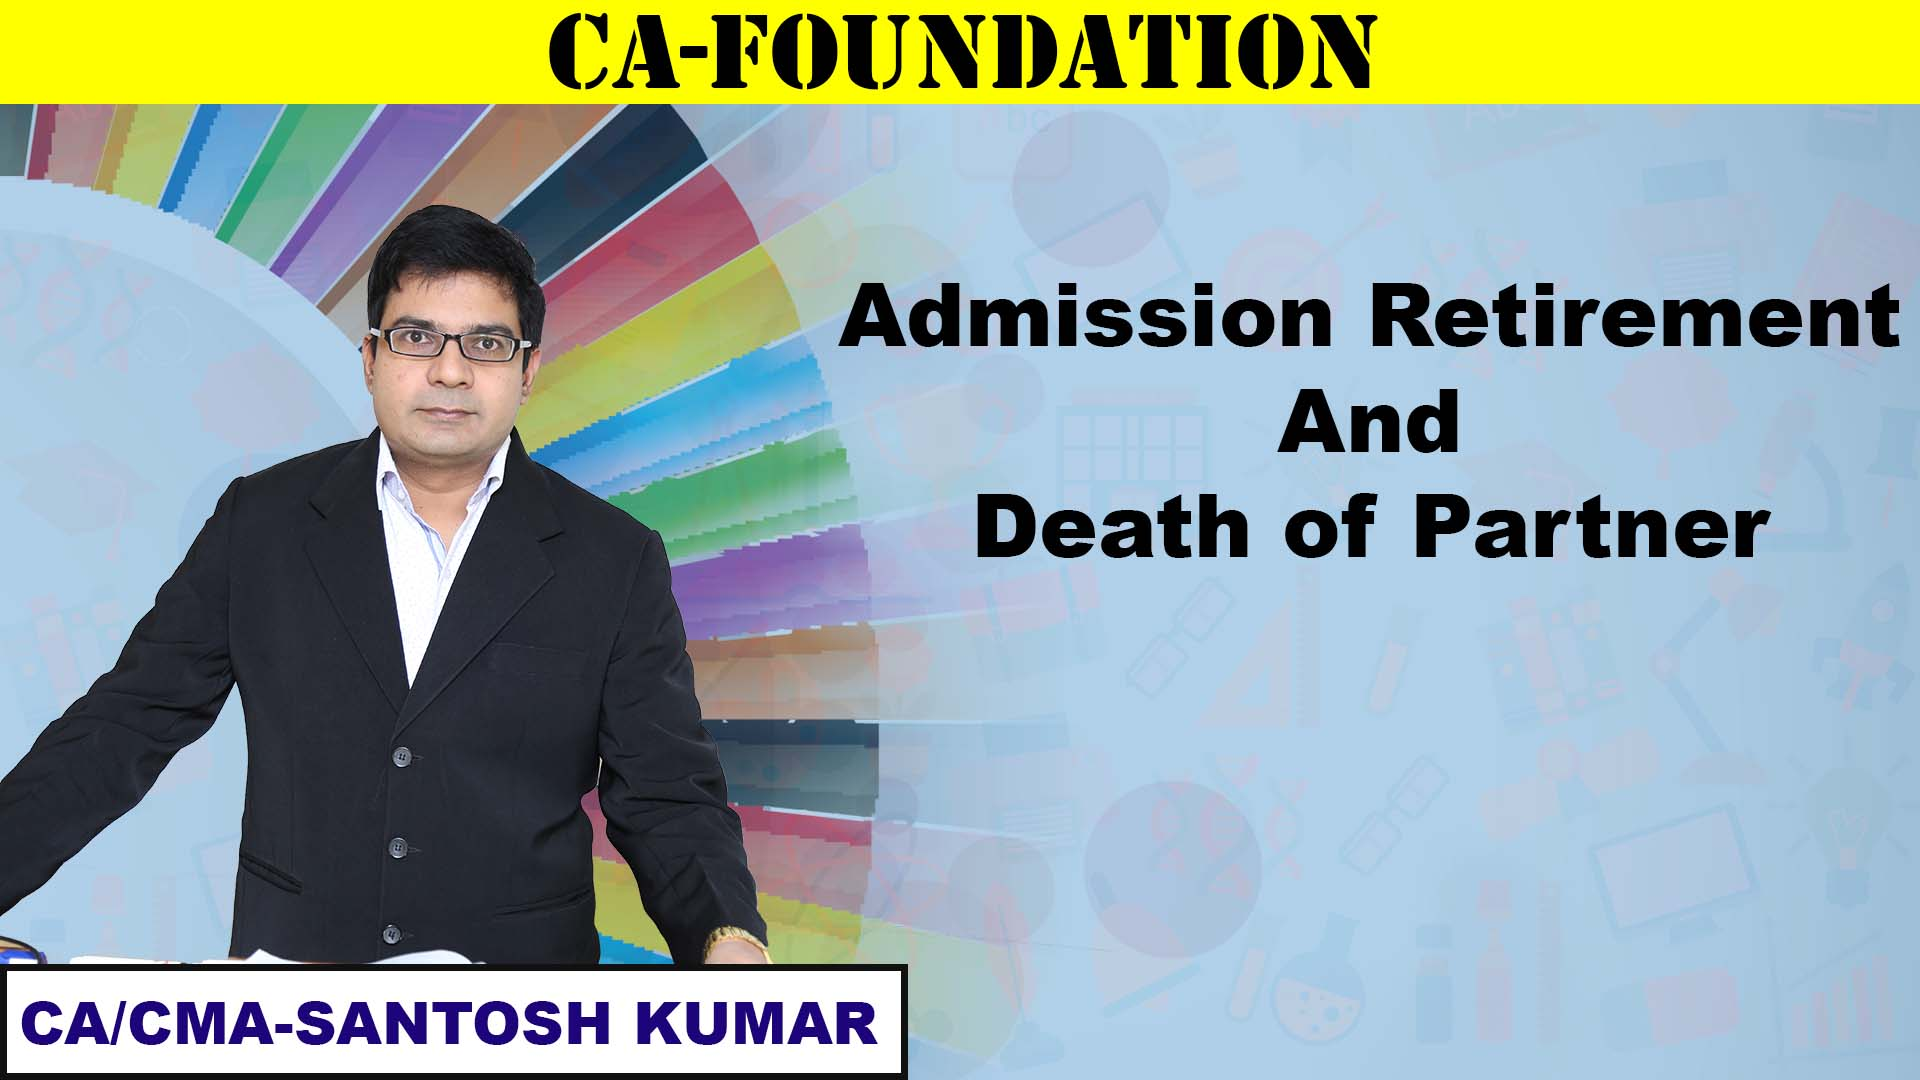 Admission Retirement And Death of Partner